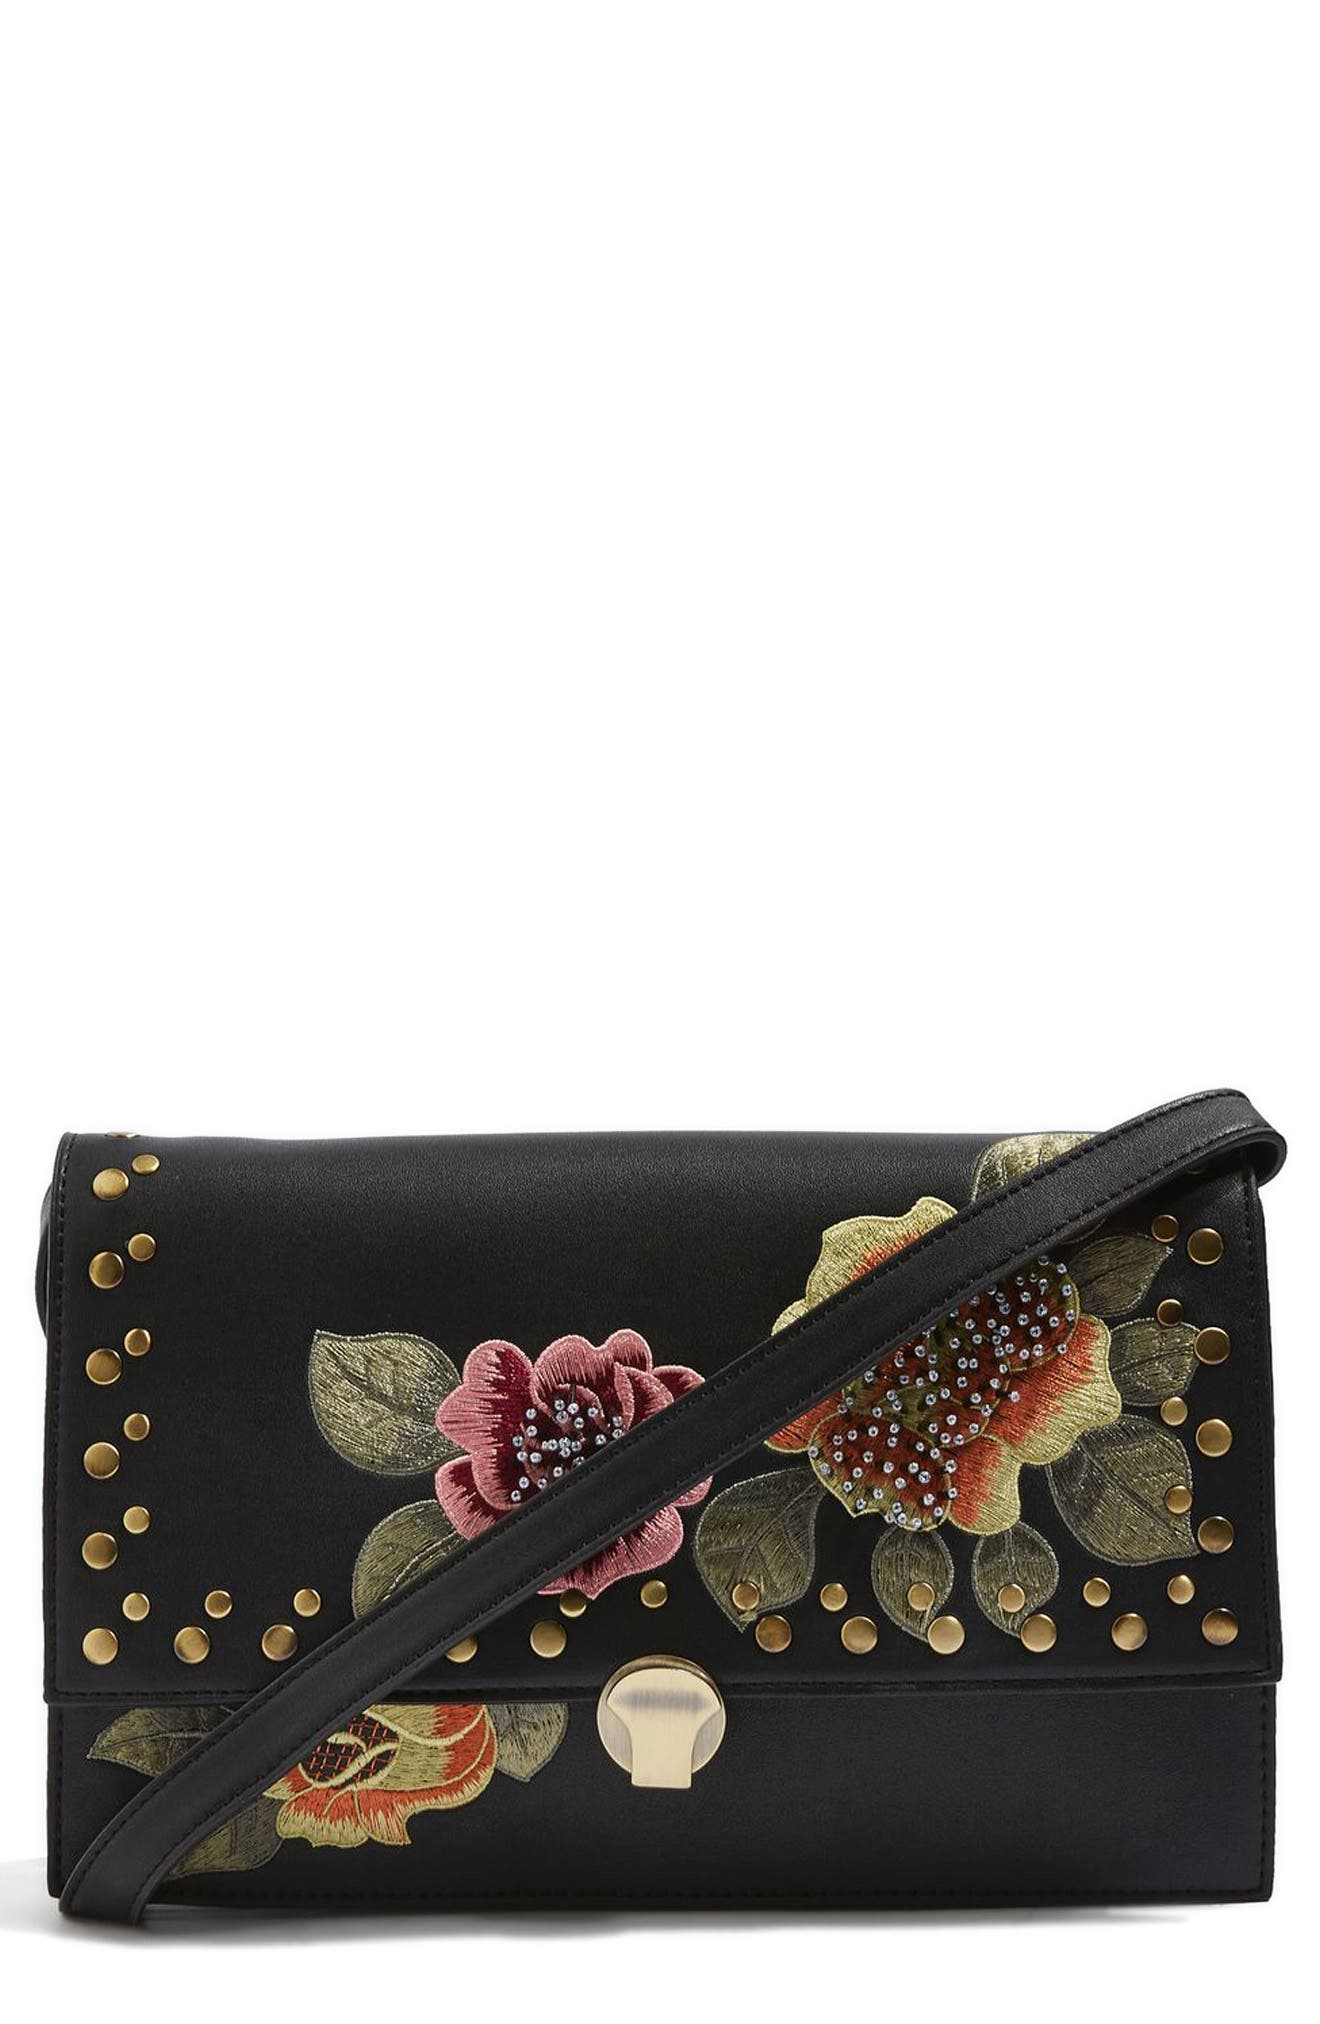 Topshop Robyn Floral Faux Leather Crossbody Bag